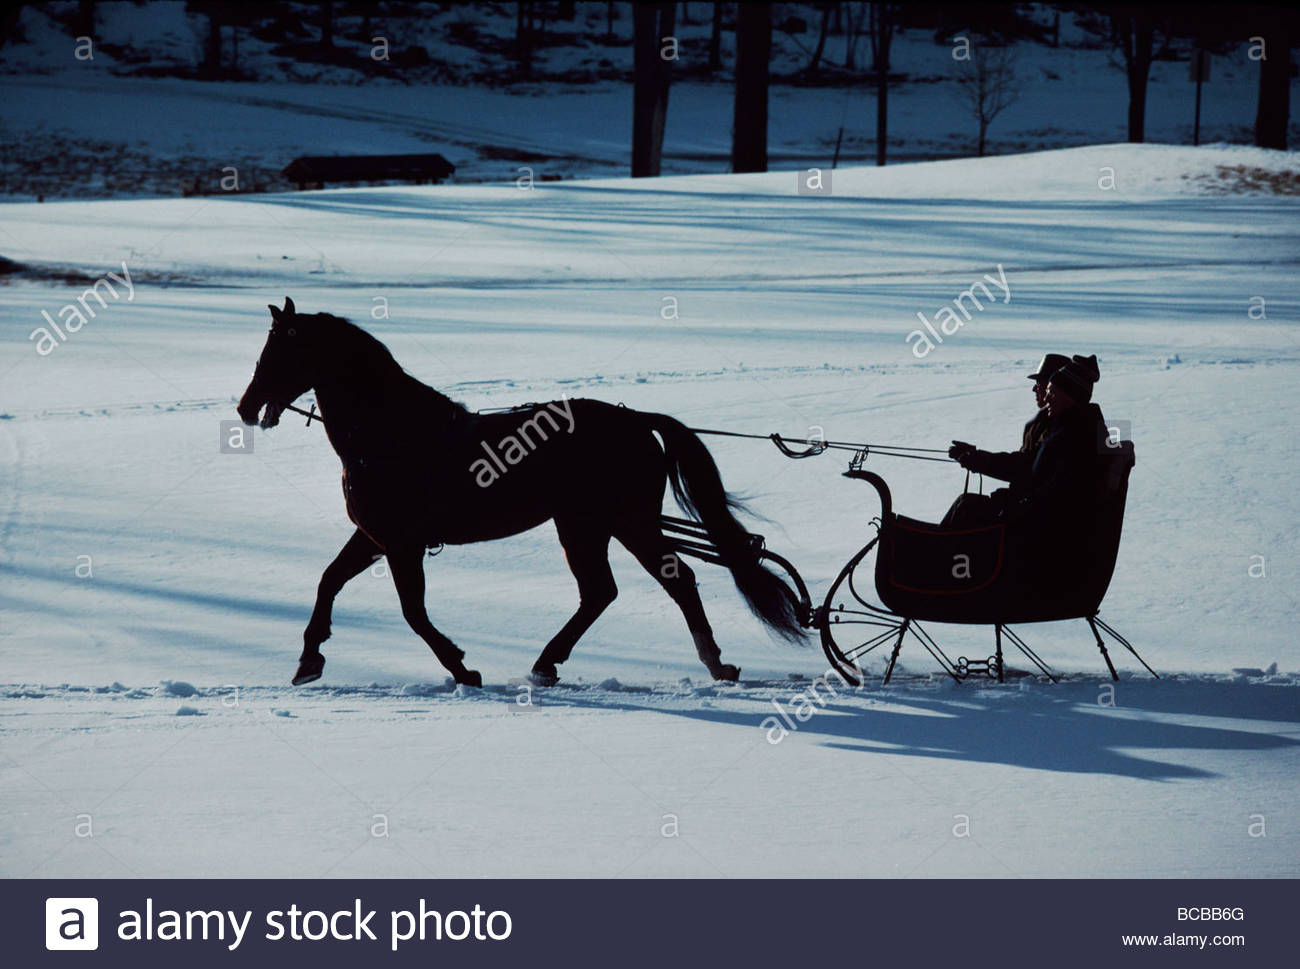 A horse-drawn sleigh ride at twilight in a snowy landscape. Stock Photo